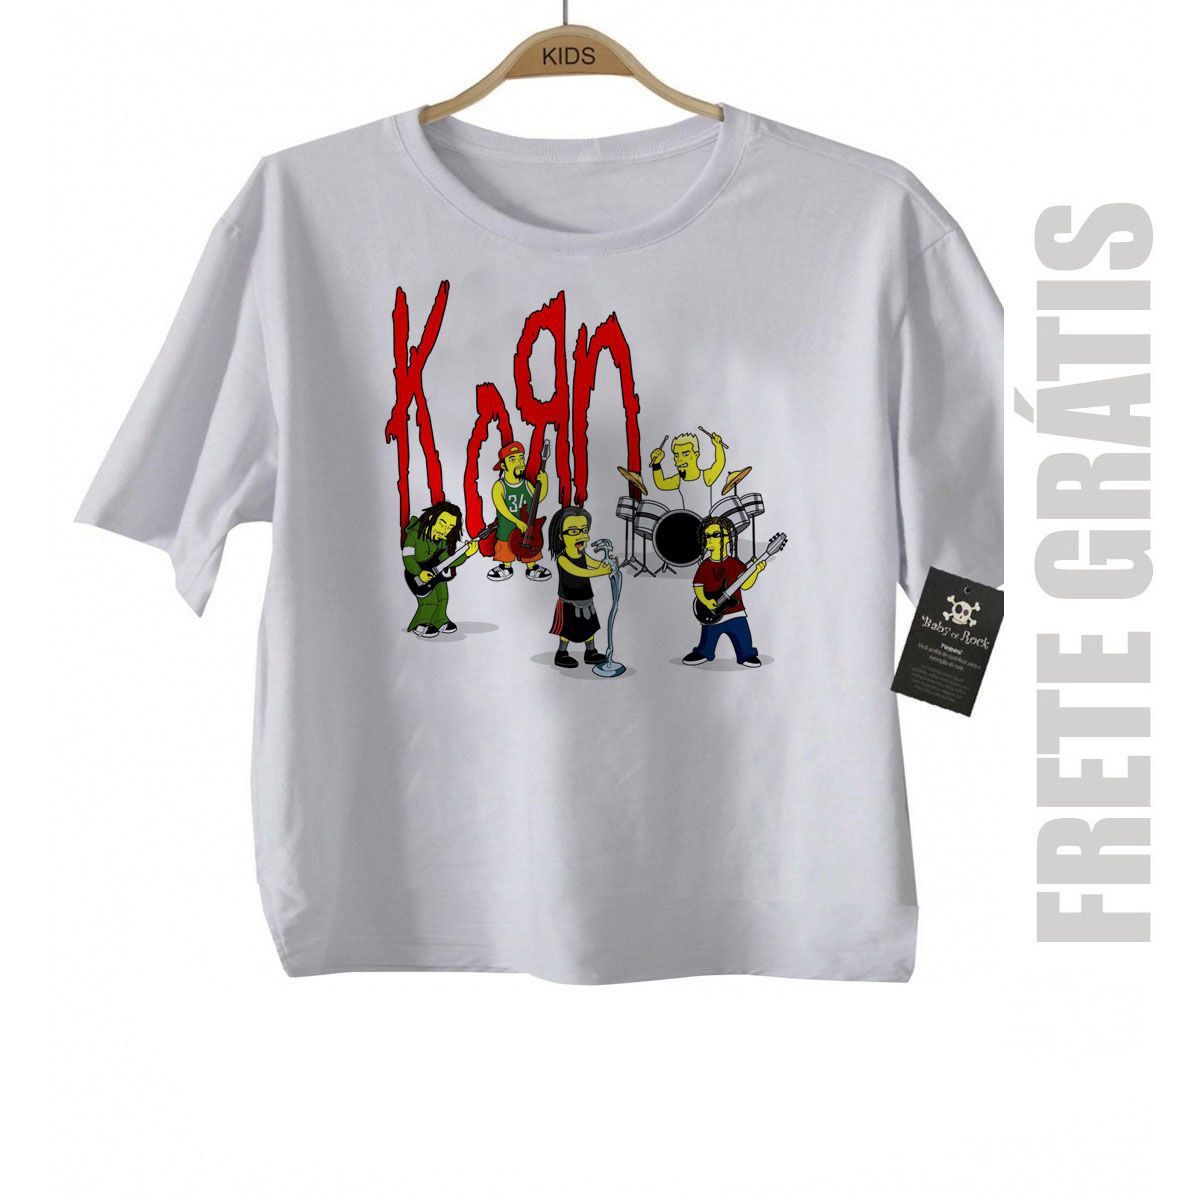 Camiseta Infantil Rock Korn -  Simpson - White  - Baby Monster S/A